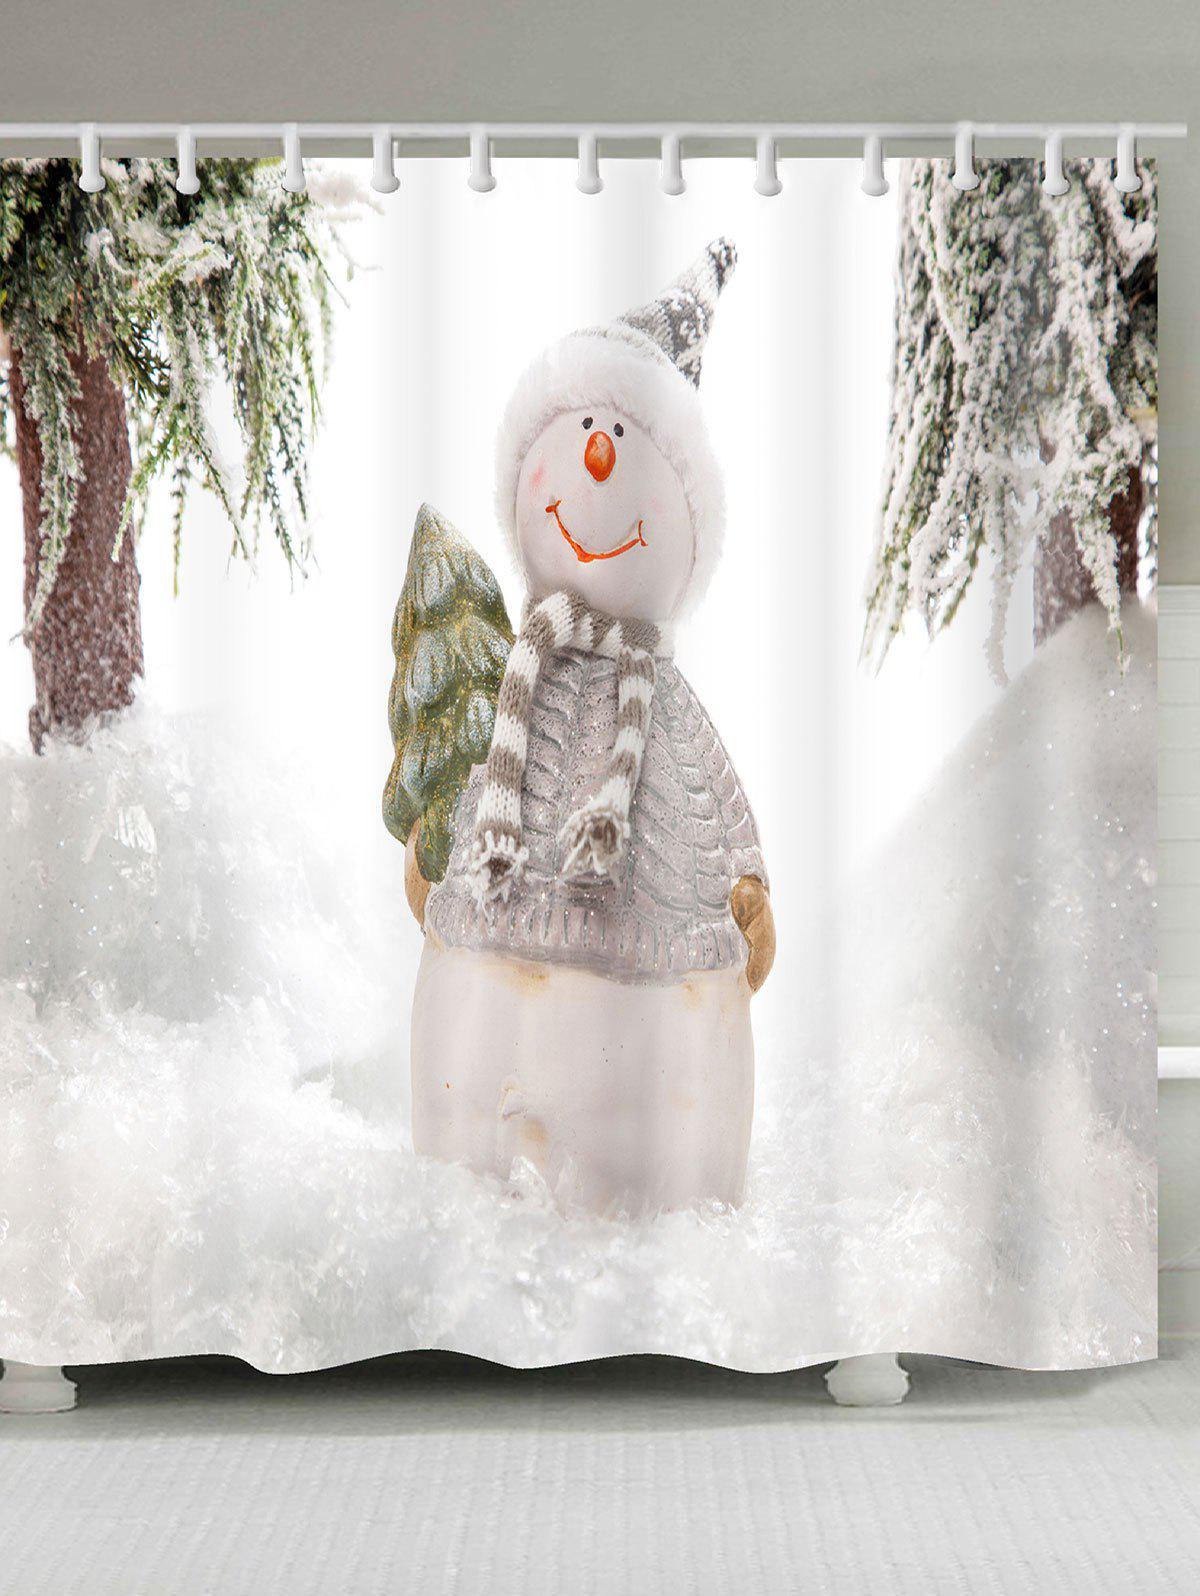 Snowy Christmas Snowman Patterned Shower Bath Curtain waterproof snowman printed bath christmas shower curtain